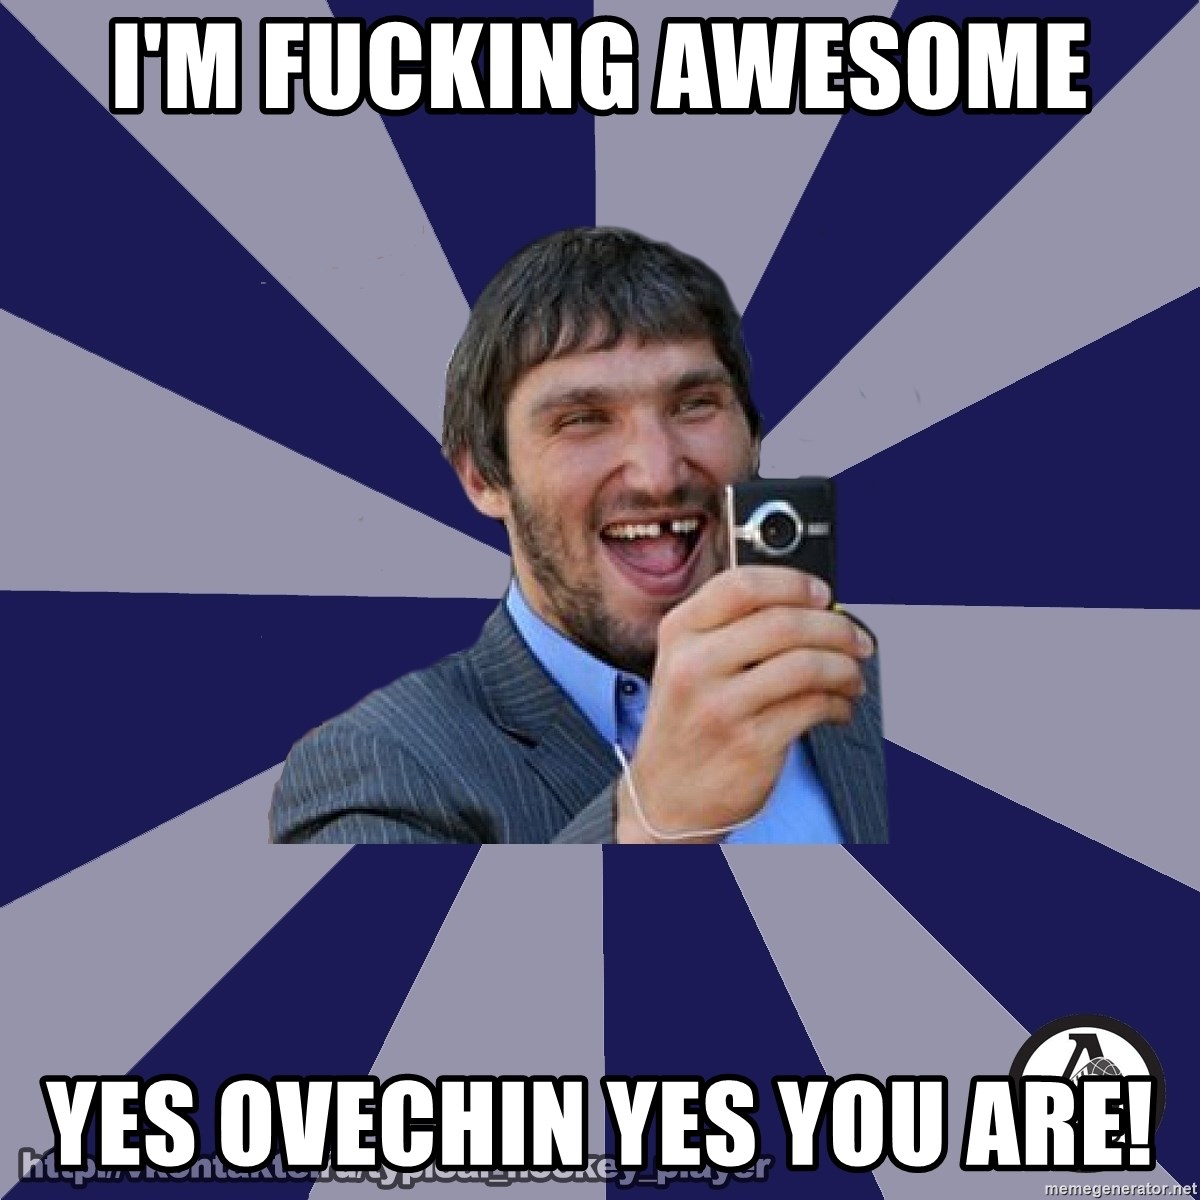 typical_hockey_player - I'm fucking awesome Yes ovechin yes you are!